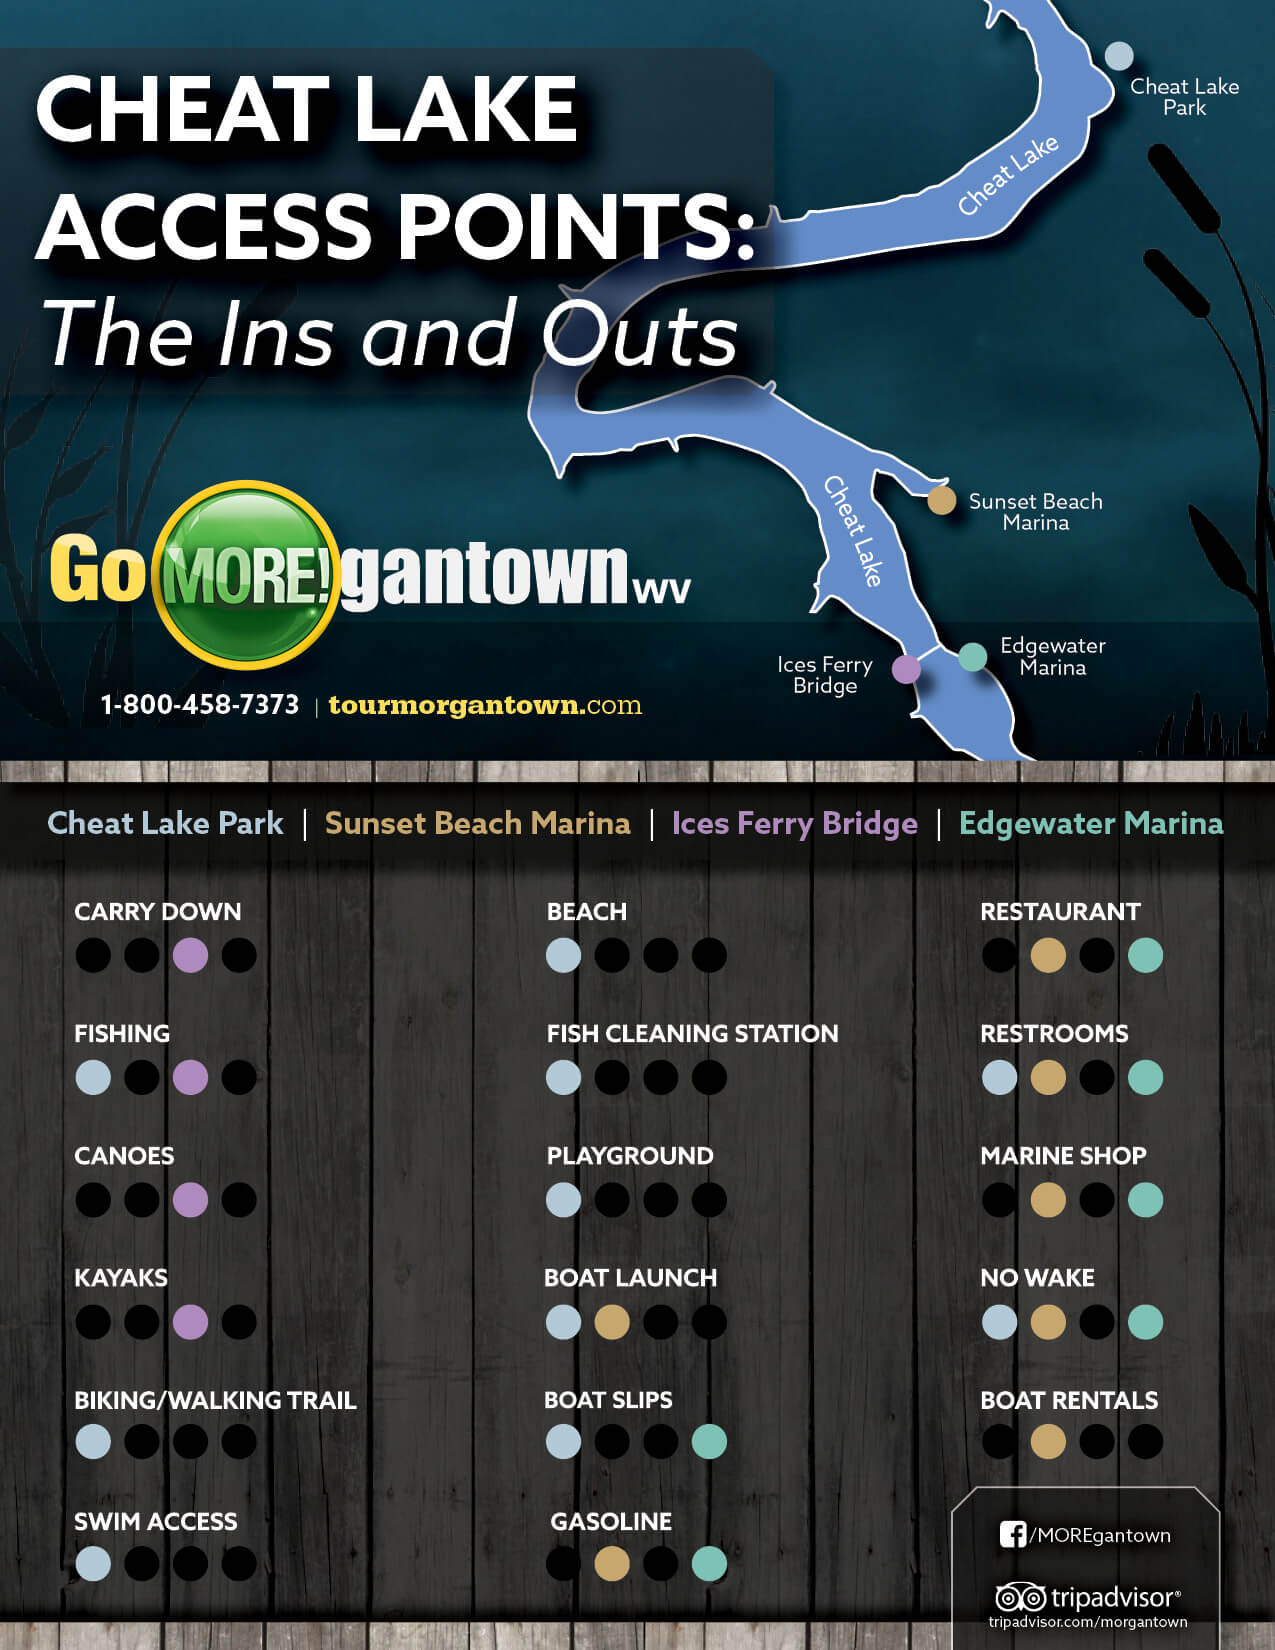 Cheat Lake access points